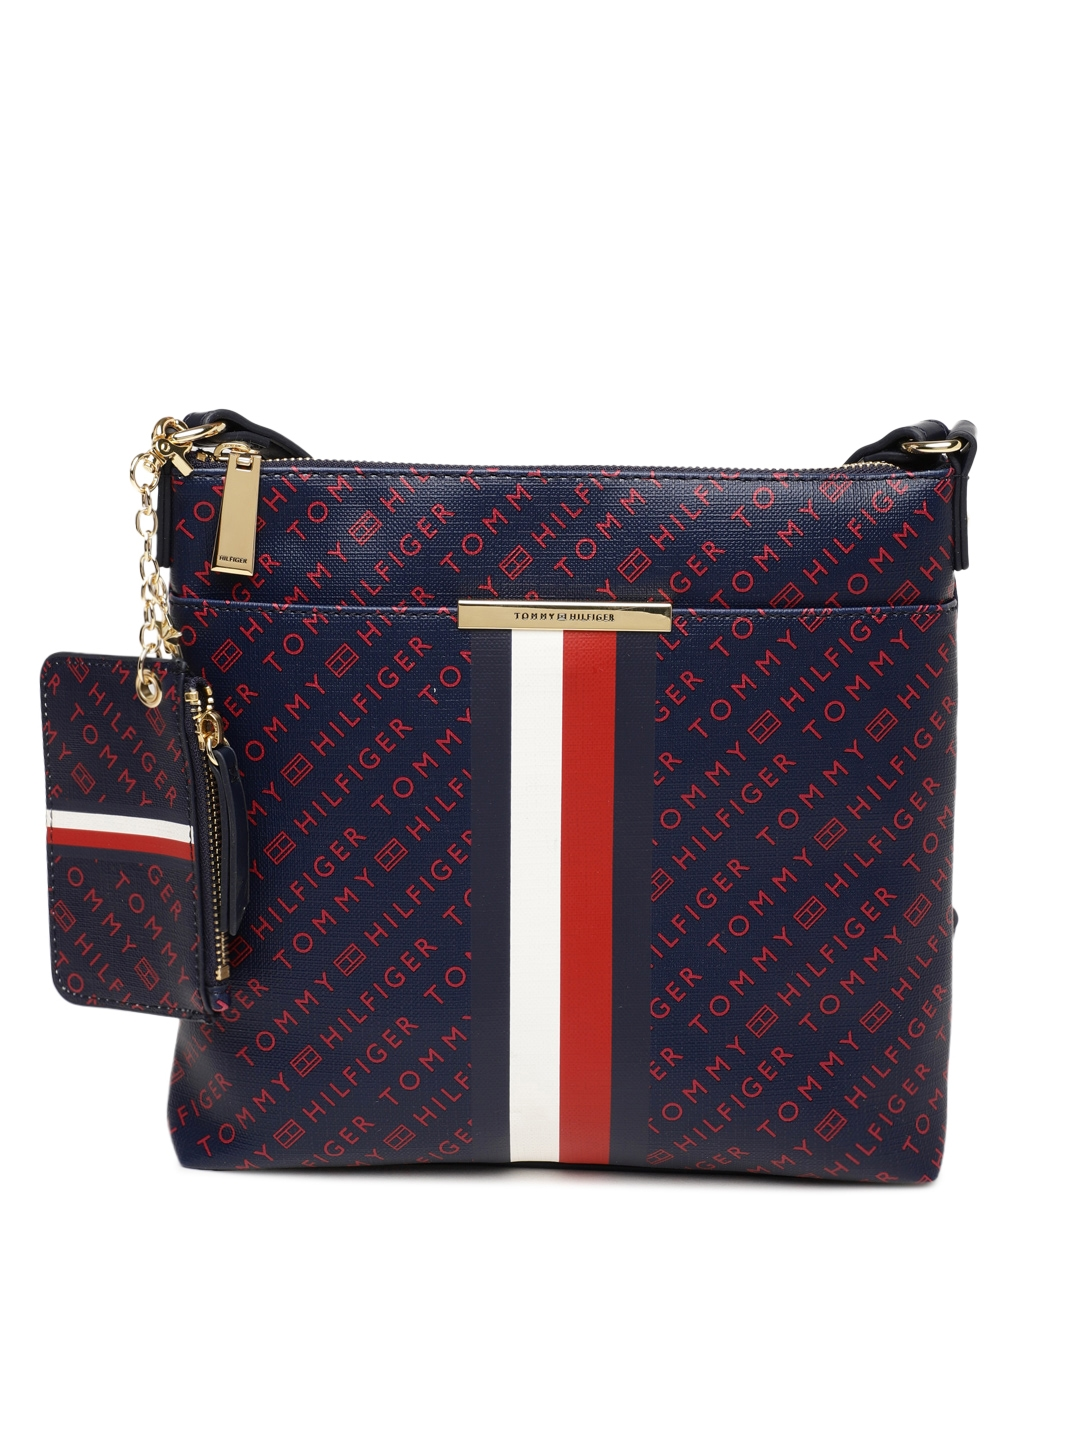 4e26e4c74eee9 Buy Tommy Hilfiger Navy Blue   Red Printed Sling Bag - Handbags for ...